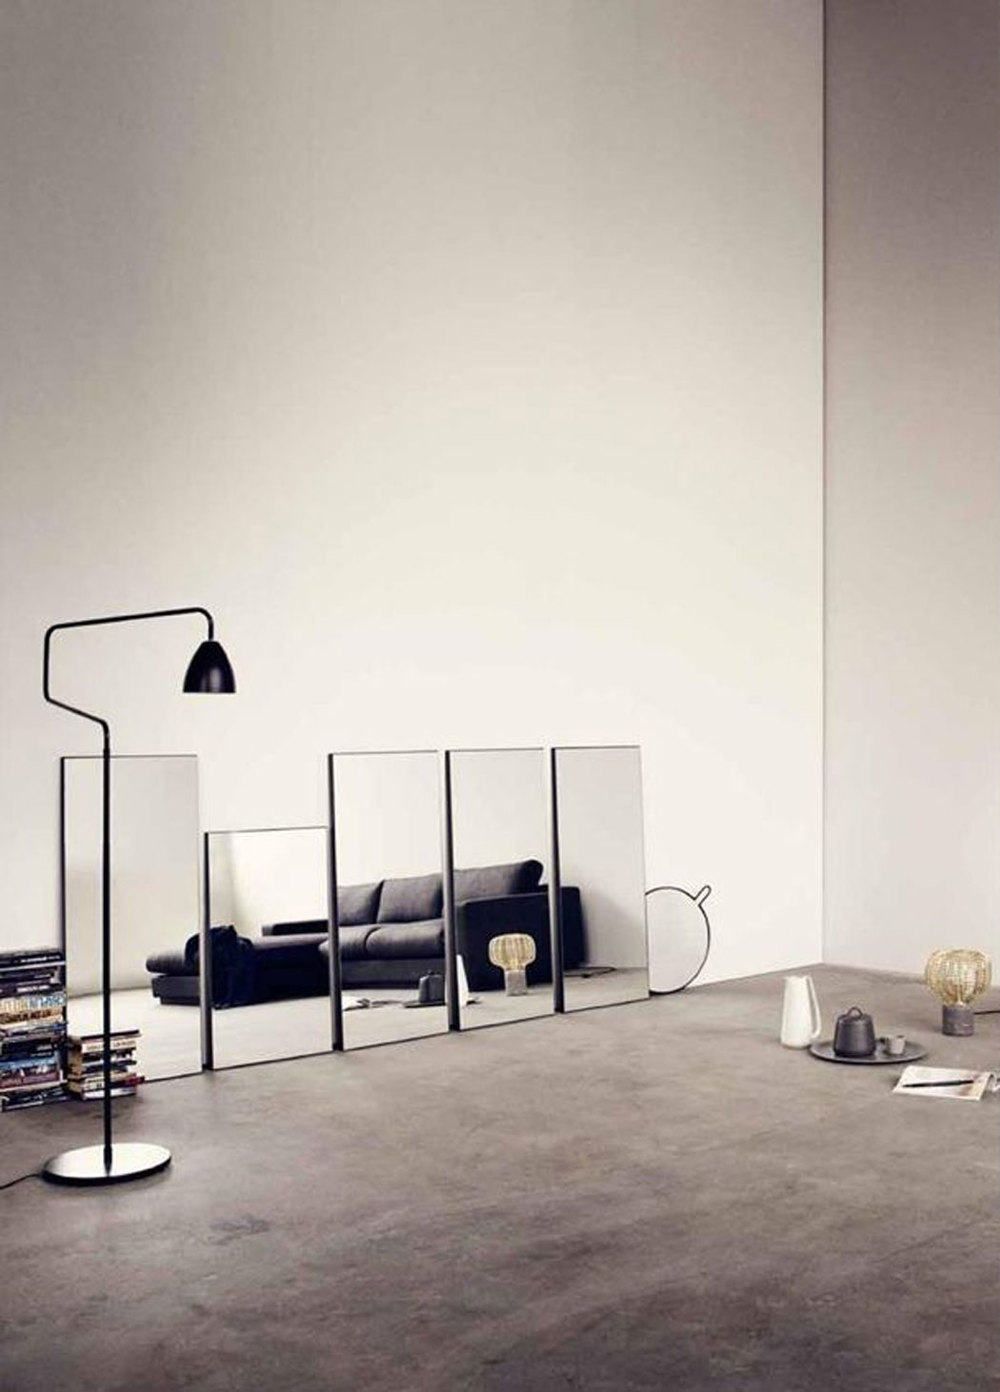 HERO-LOUNGE-ROOM-MIRROR-COUCH-LAMP-ITCHBAN.COM.jpg